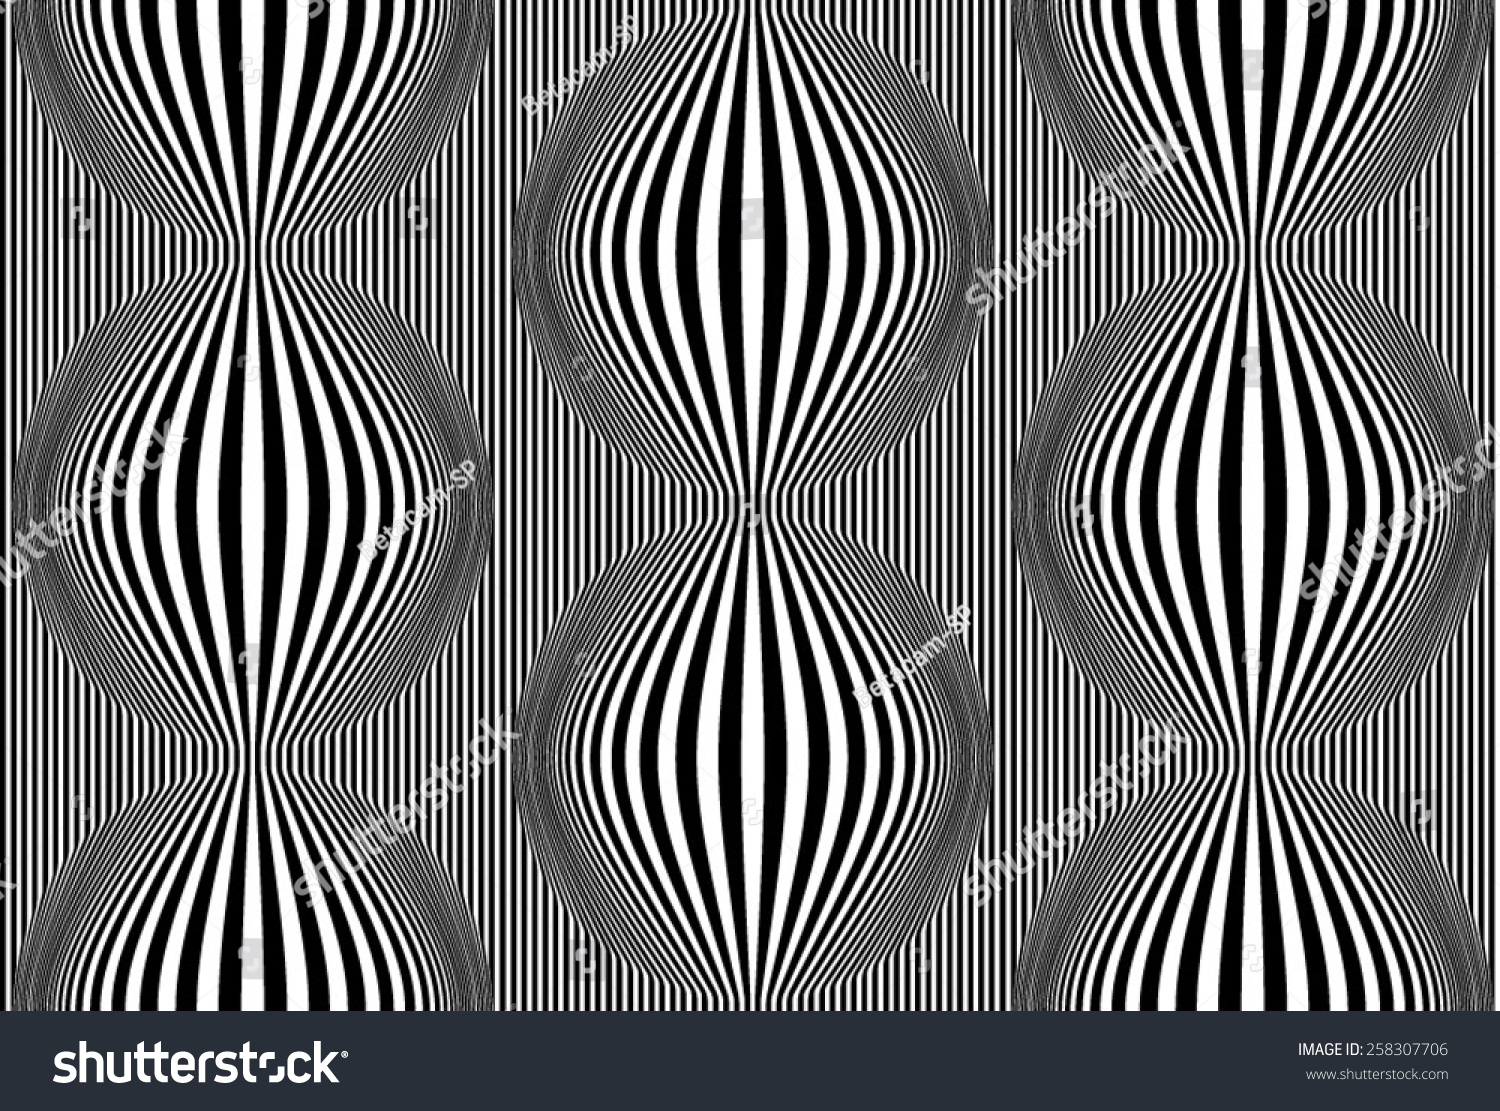 Line Design Op Art : Index of art opart